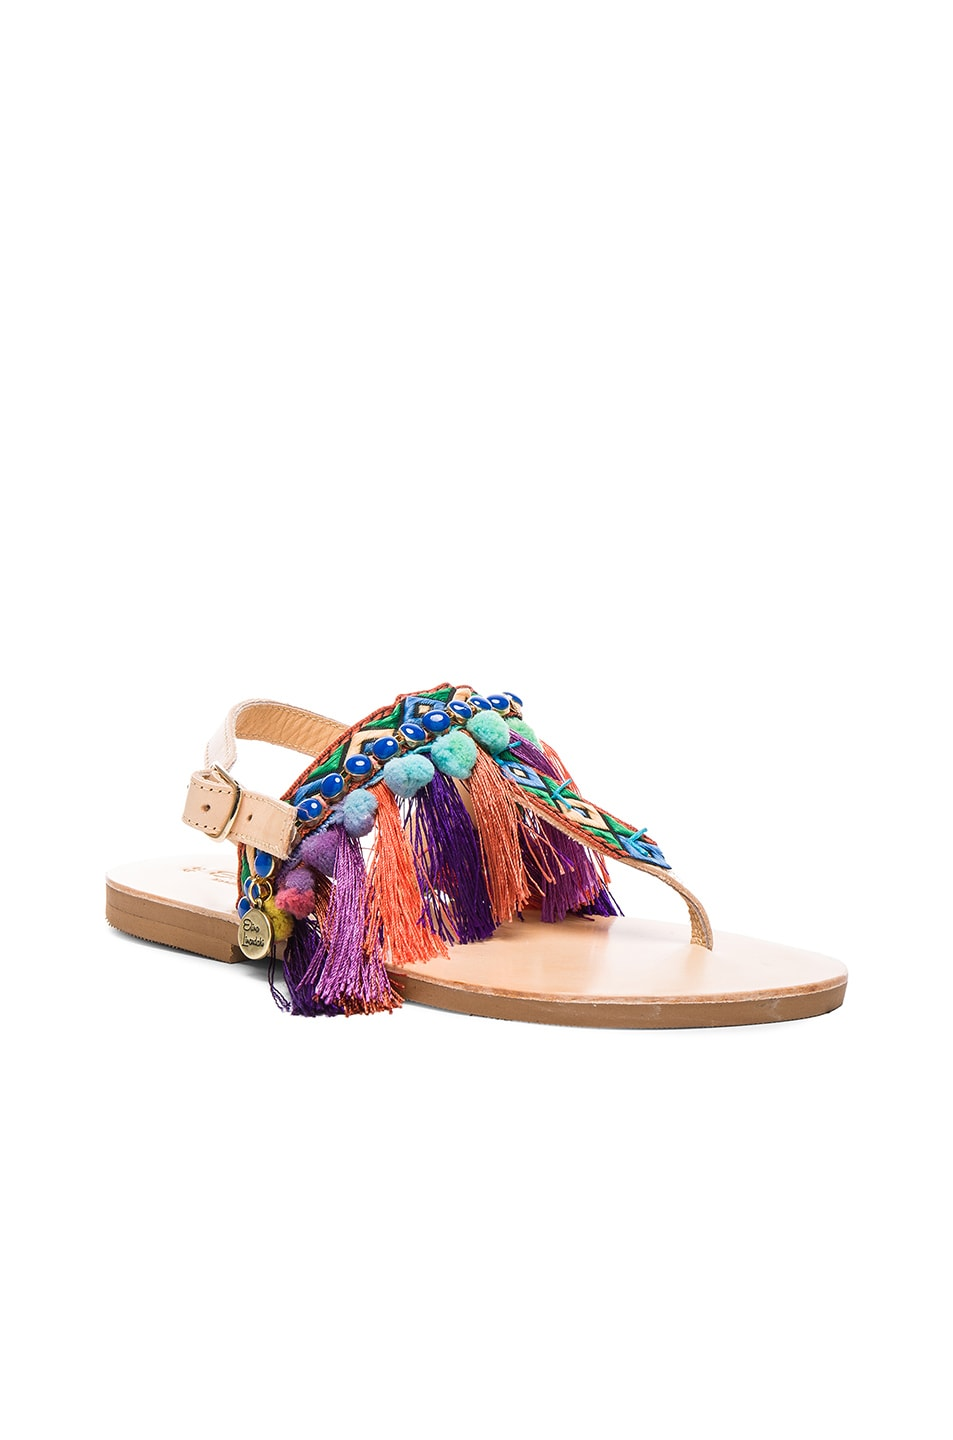 Image 3 of Elina Linardaki Leather Dizzy Parrot Sandals in Multi